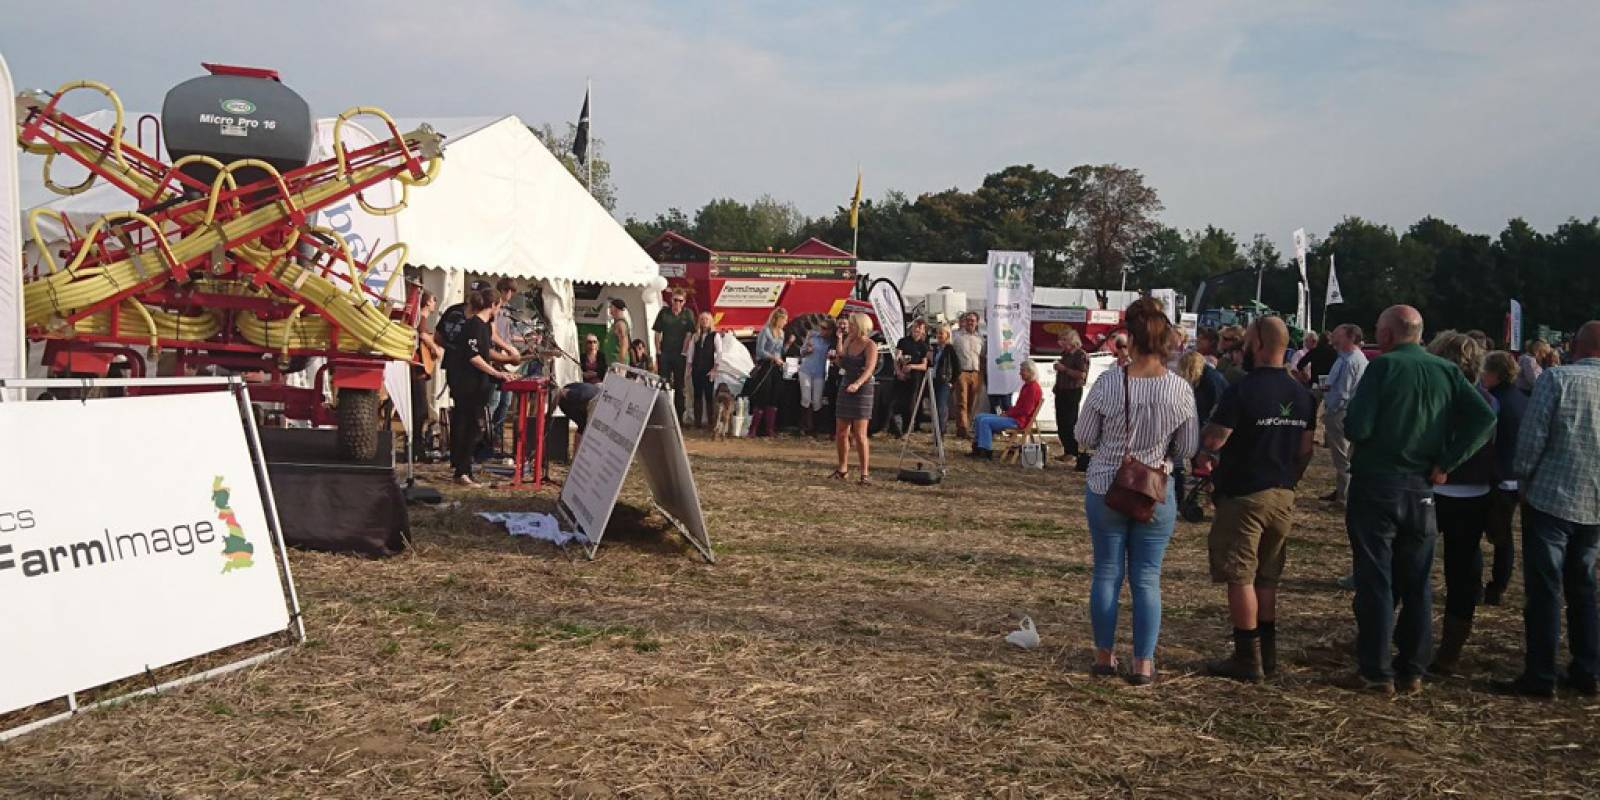 East-Kent-Ploughing-Match-2017-tent-crowd-band.jpg